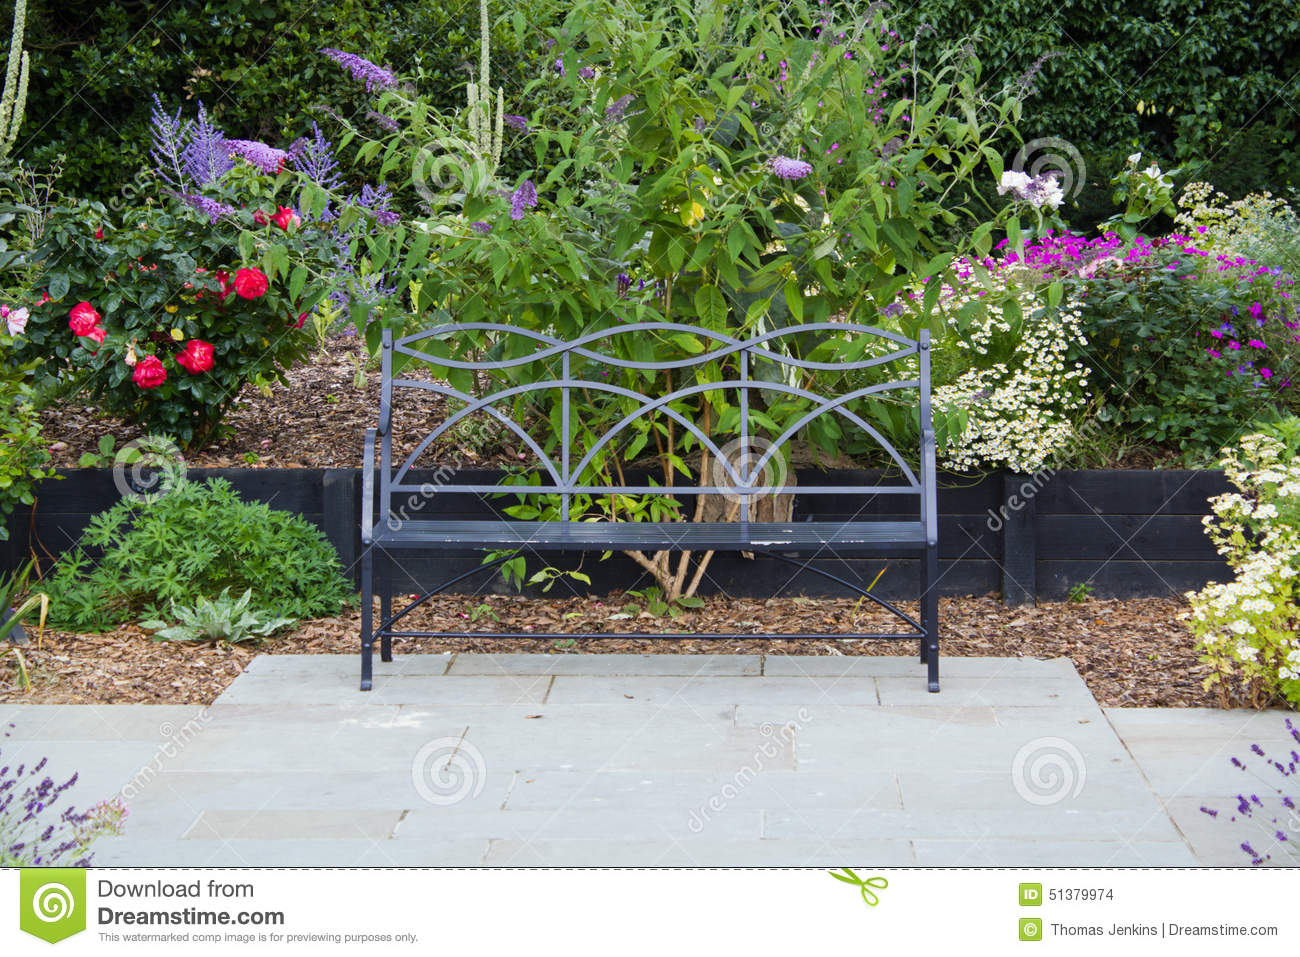 Bench seat on garden patio with flowers stock photo image 51379974 - Flowers planted may complete garden ...